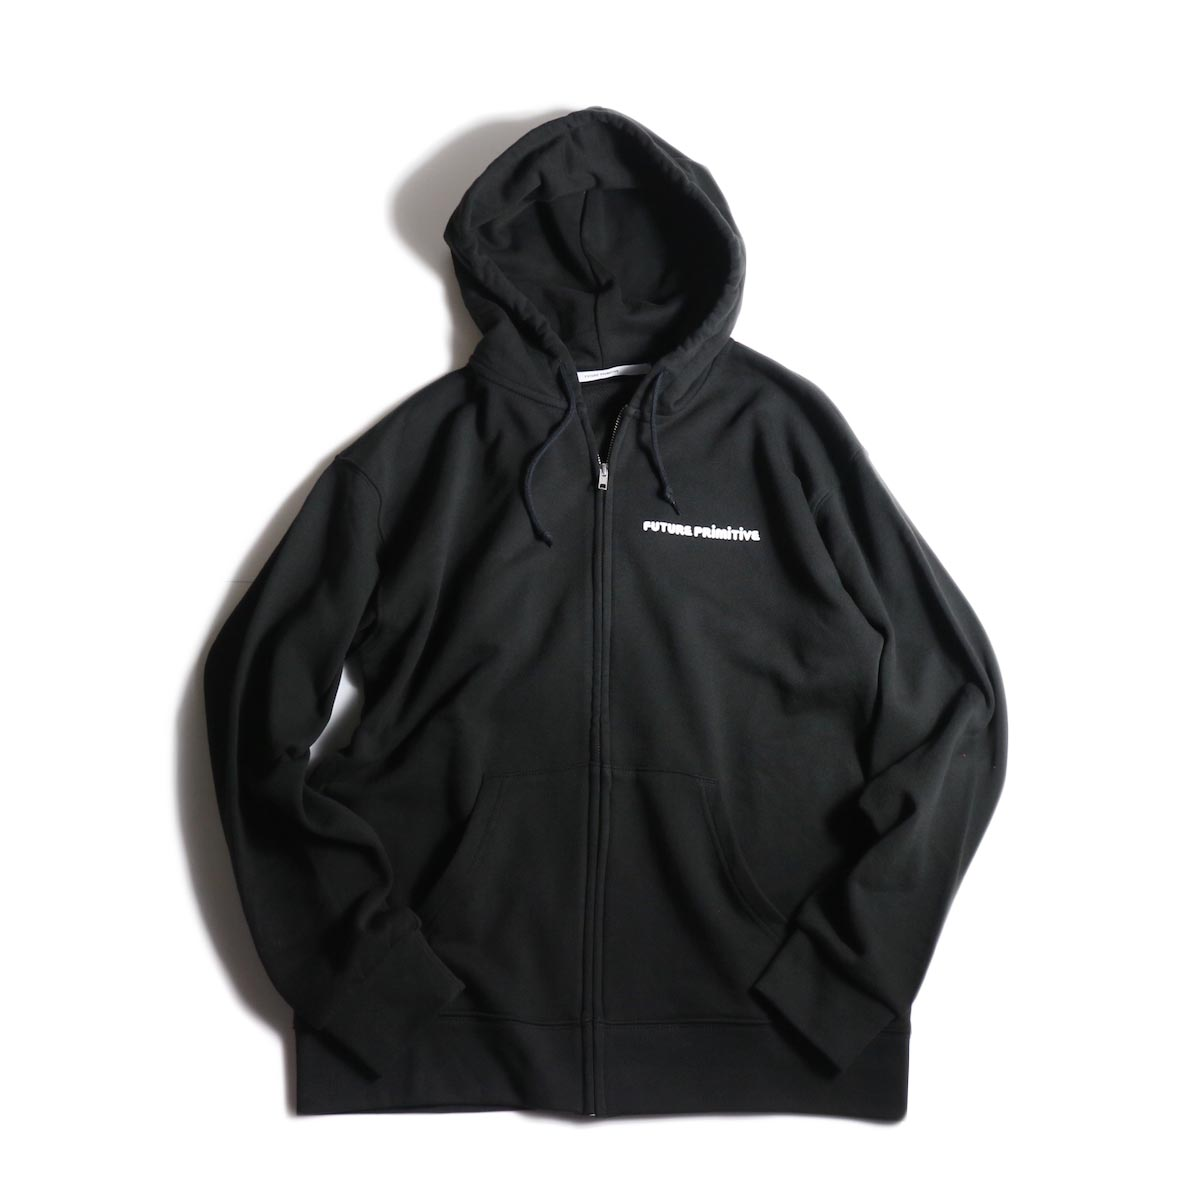 FUTURE PRIMITIVE / FP CURIOUS ZIP HOODIE (Black)